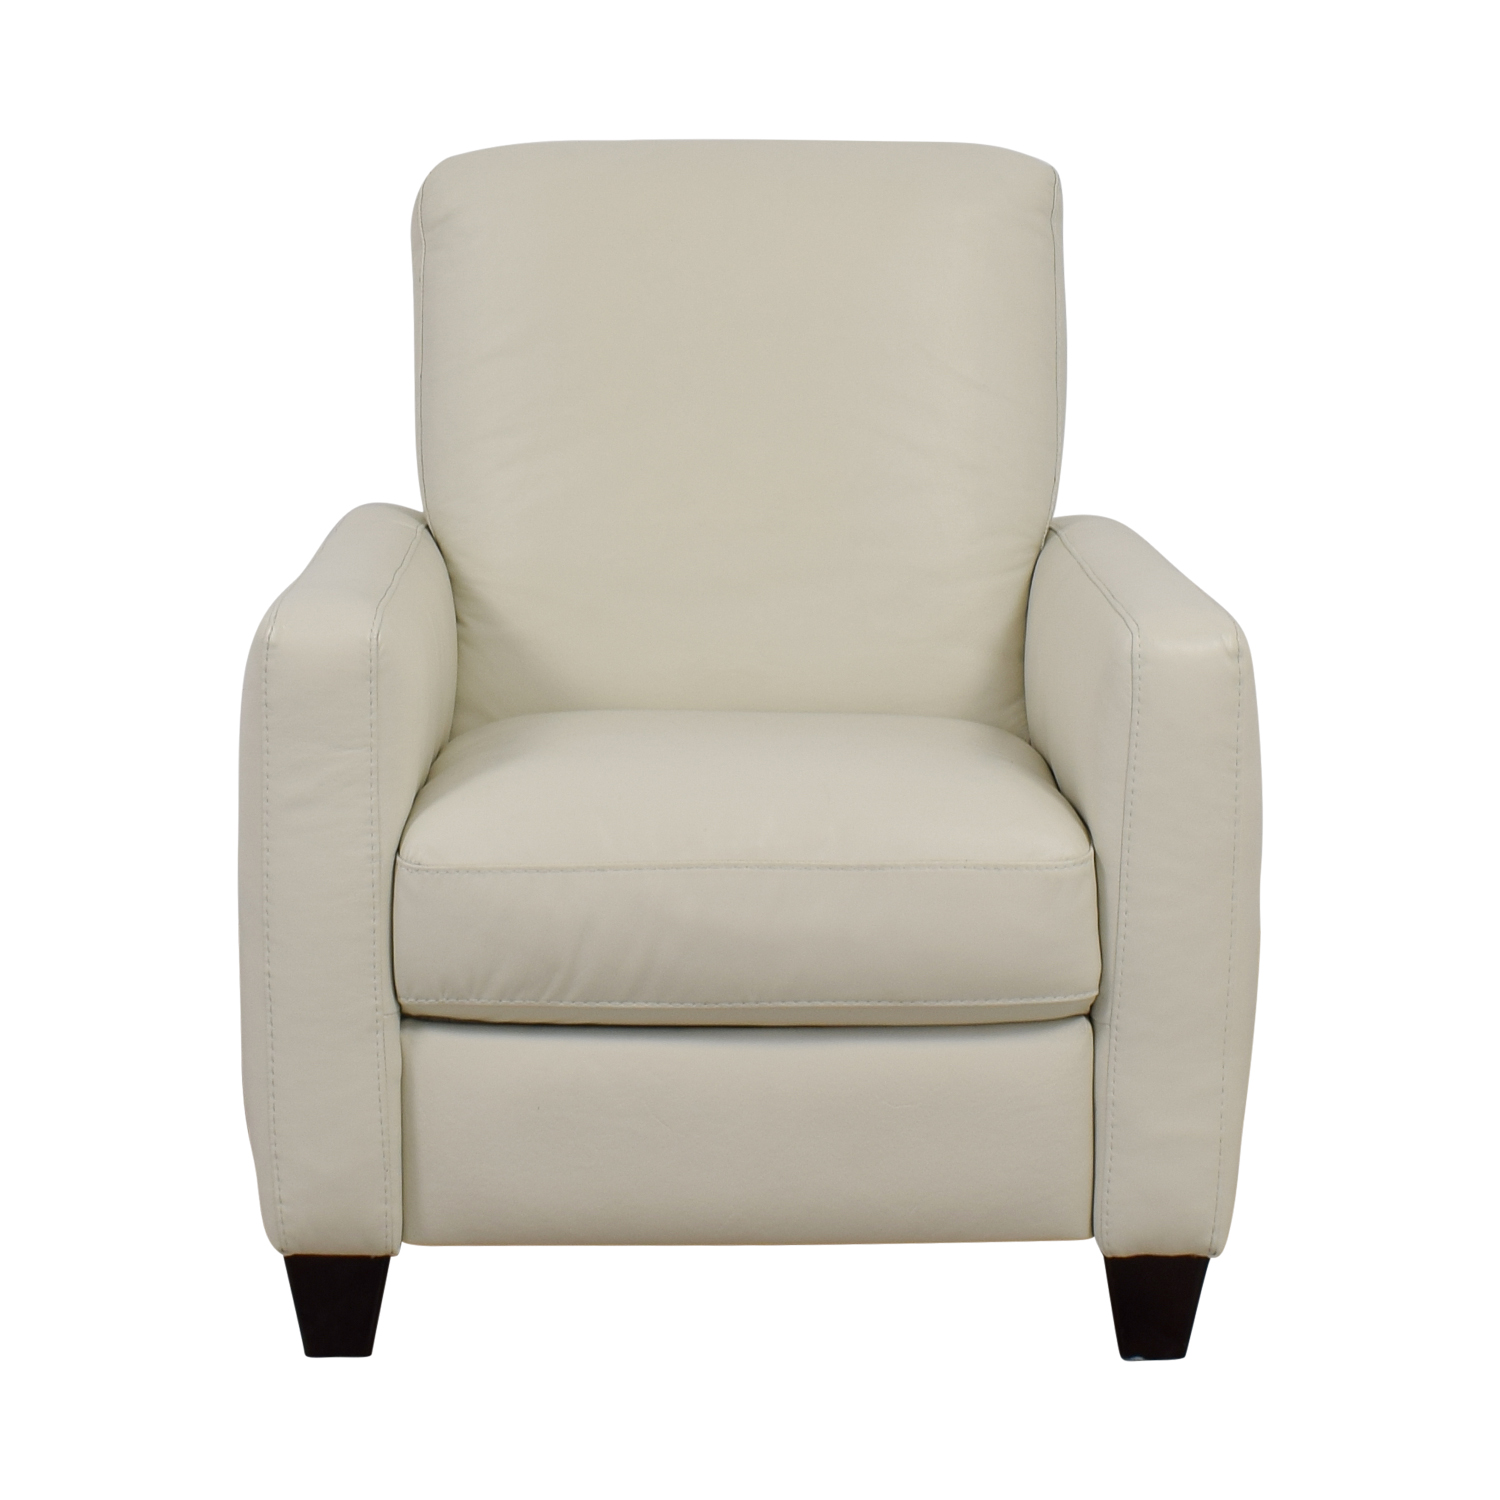 69 Off Natuzzi Natuzzi White Leather Recliner Chairs